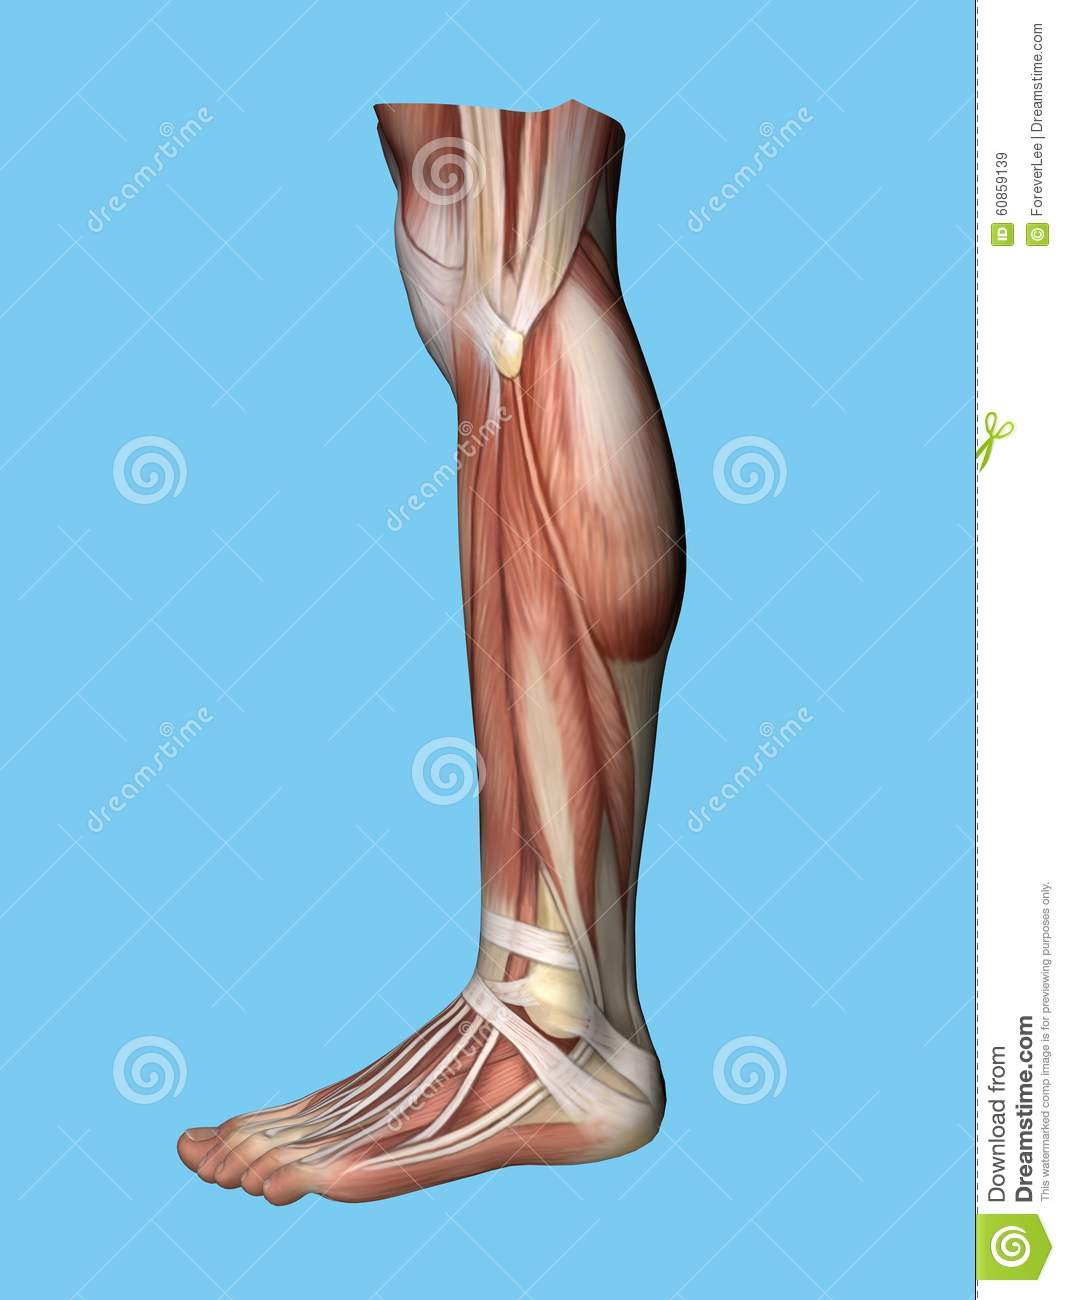 Anatomy side view of leg stock illustration. Illustration of anatomy ...